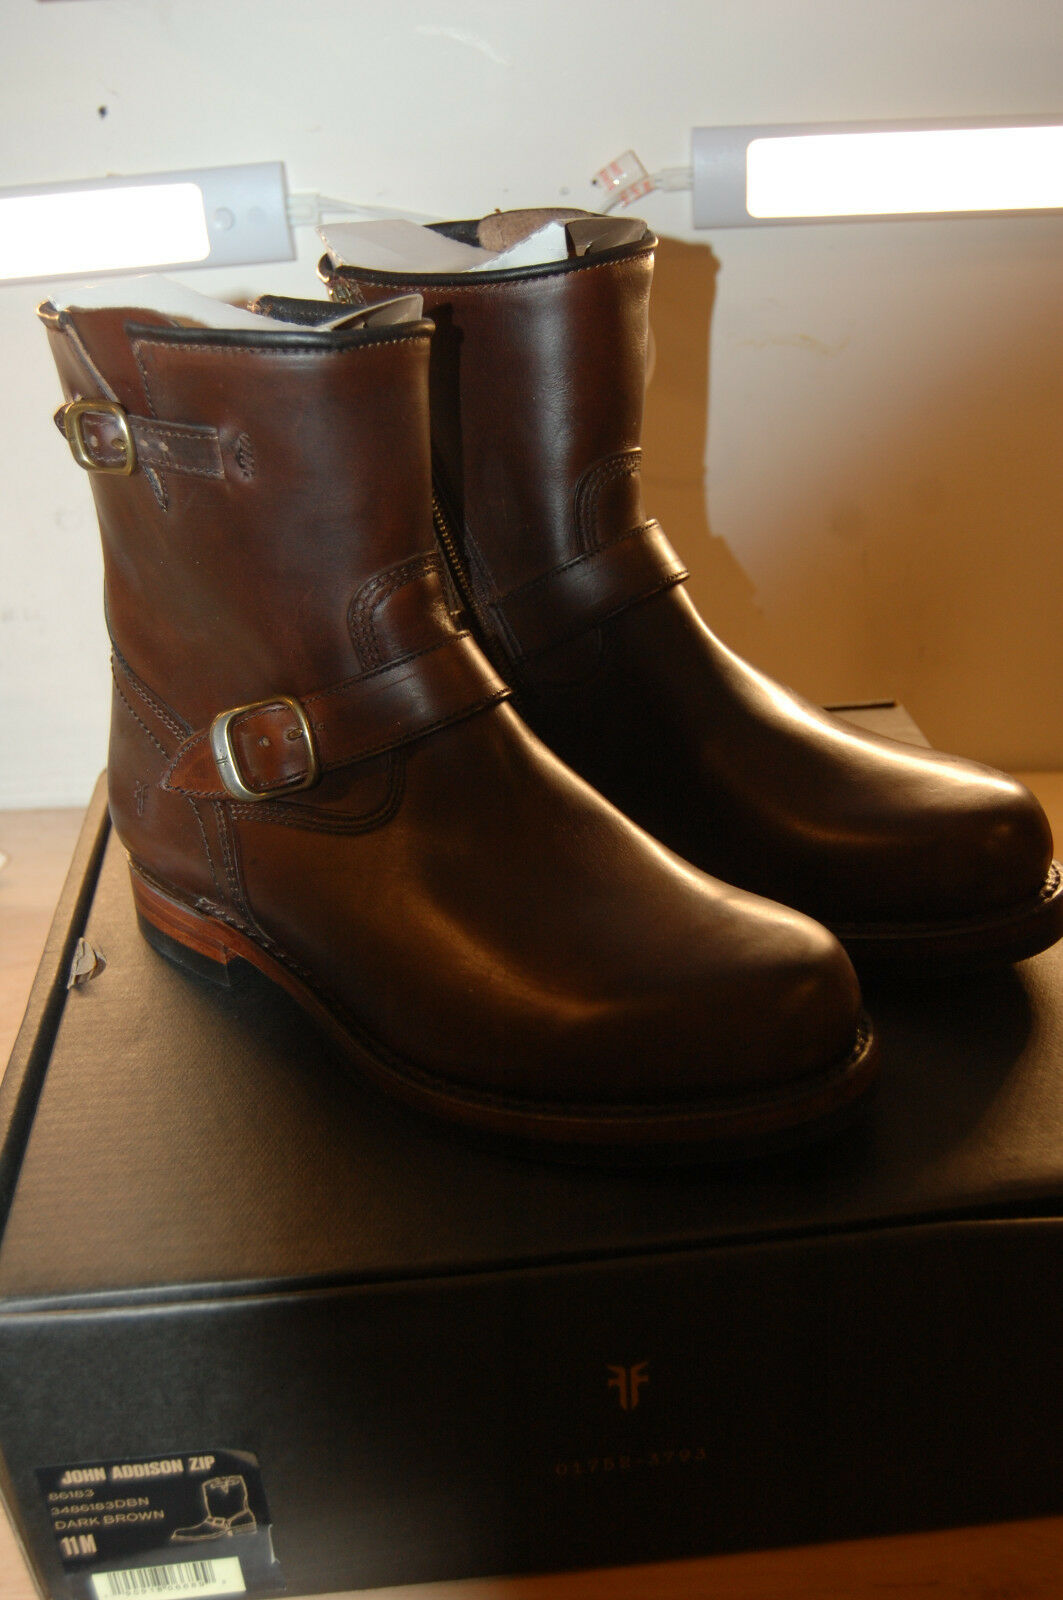 NU FRYE Uomo John Addison Inside Zip Engineer  478 Stivali 11 M Brown Made IN  A